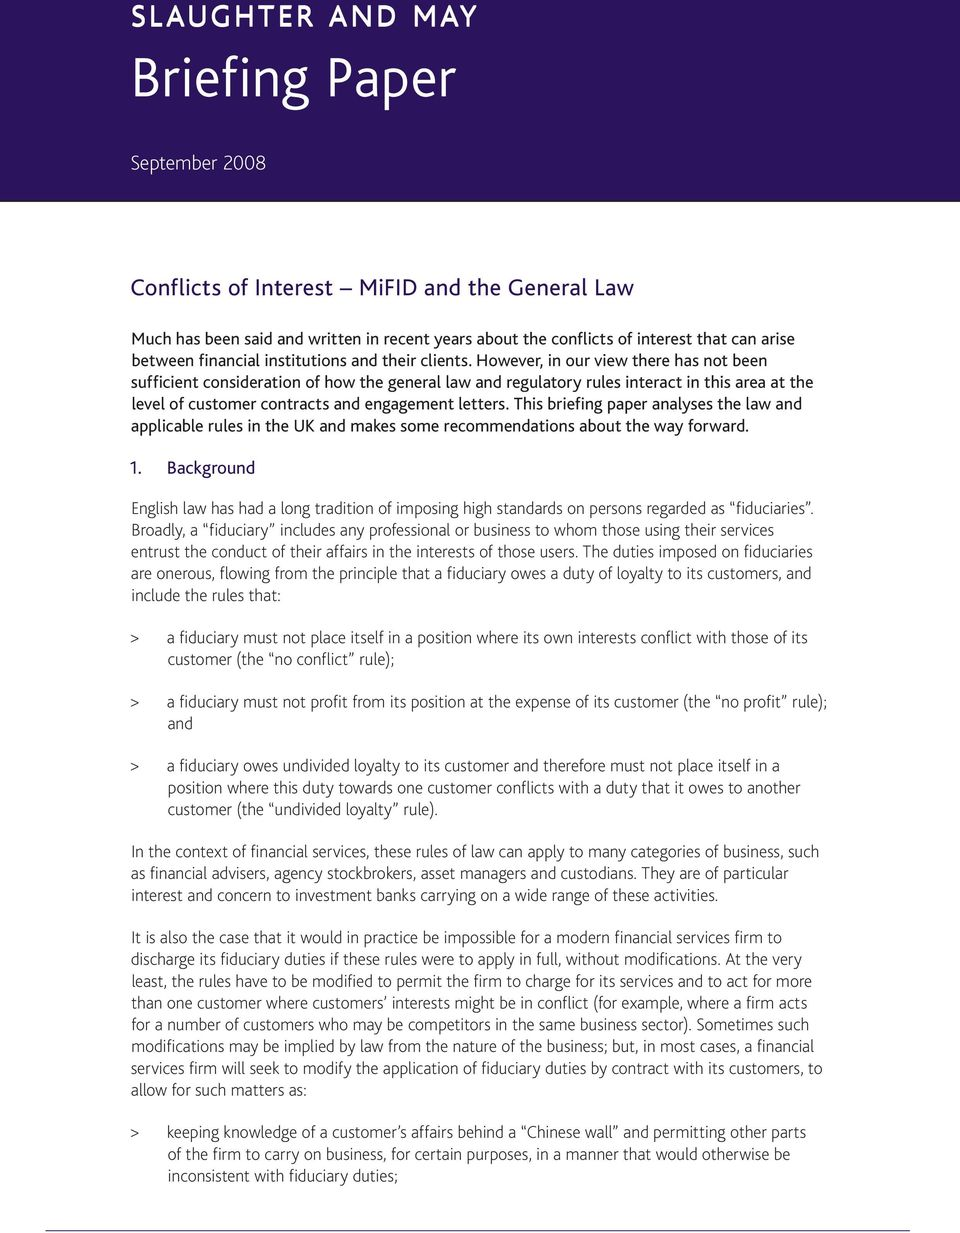 However, in our view there has not been sufficient consideration of how the general law and regulatory rules interact in this area at the level of customer contracts and engagement letters.